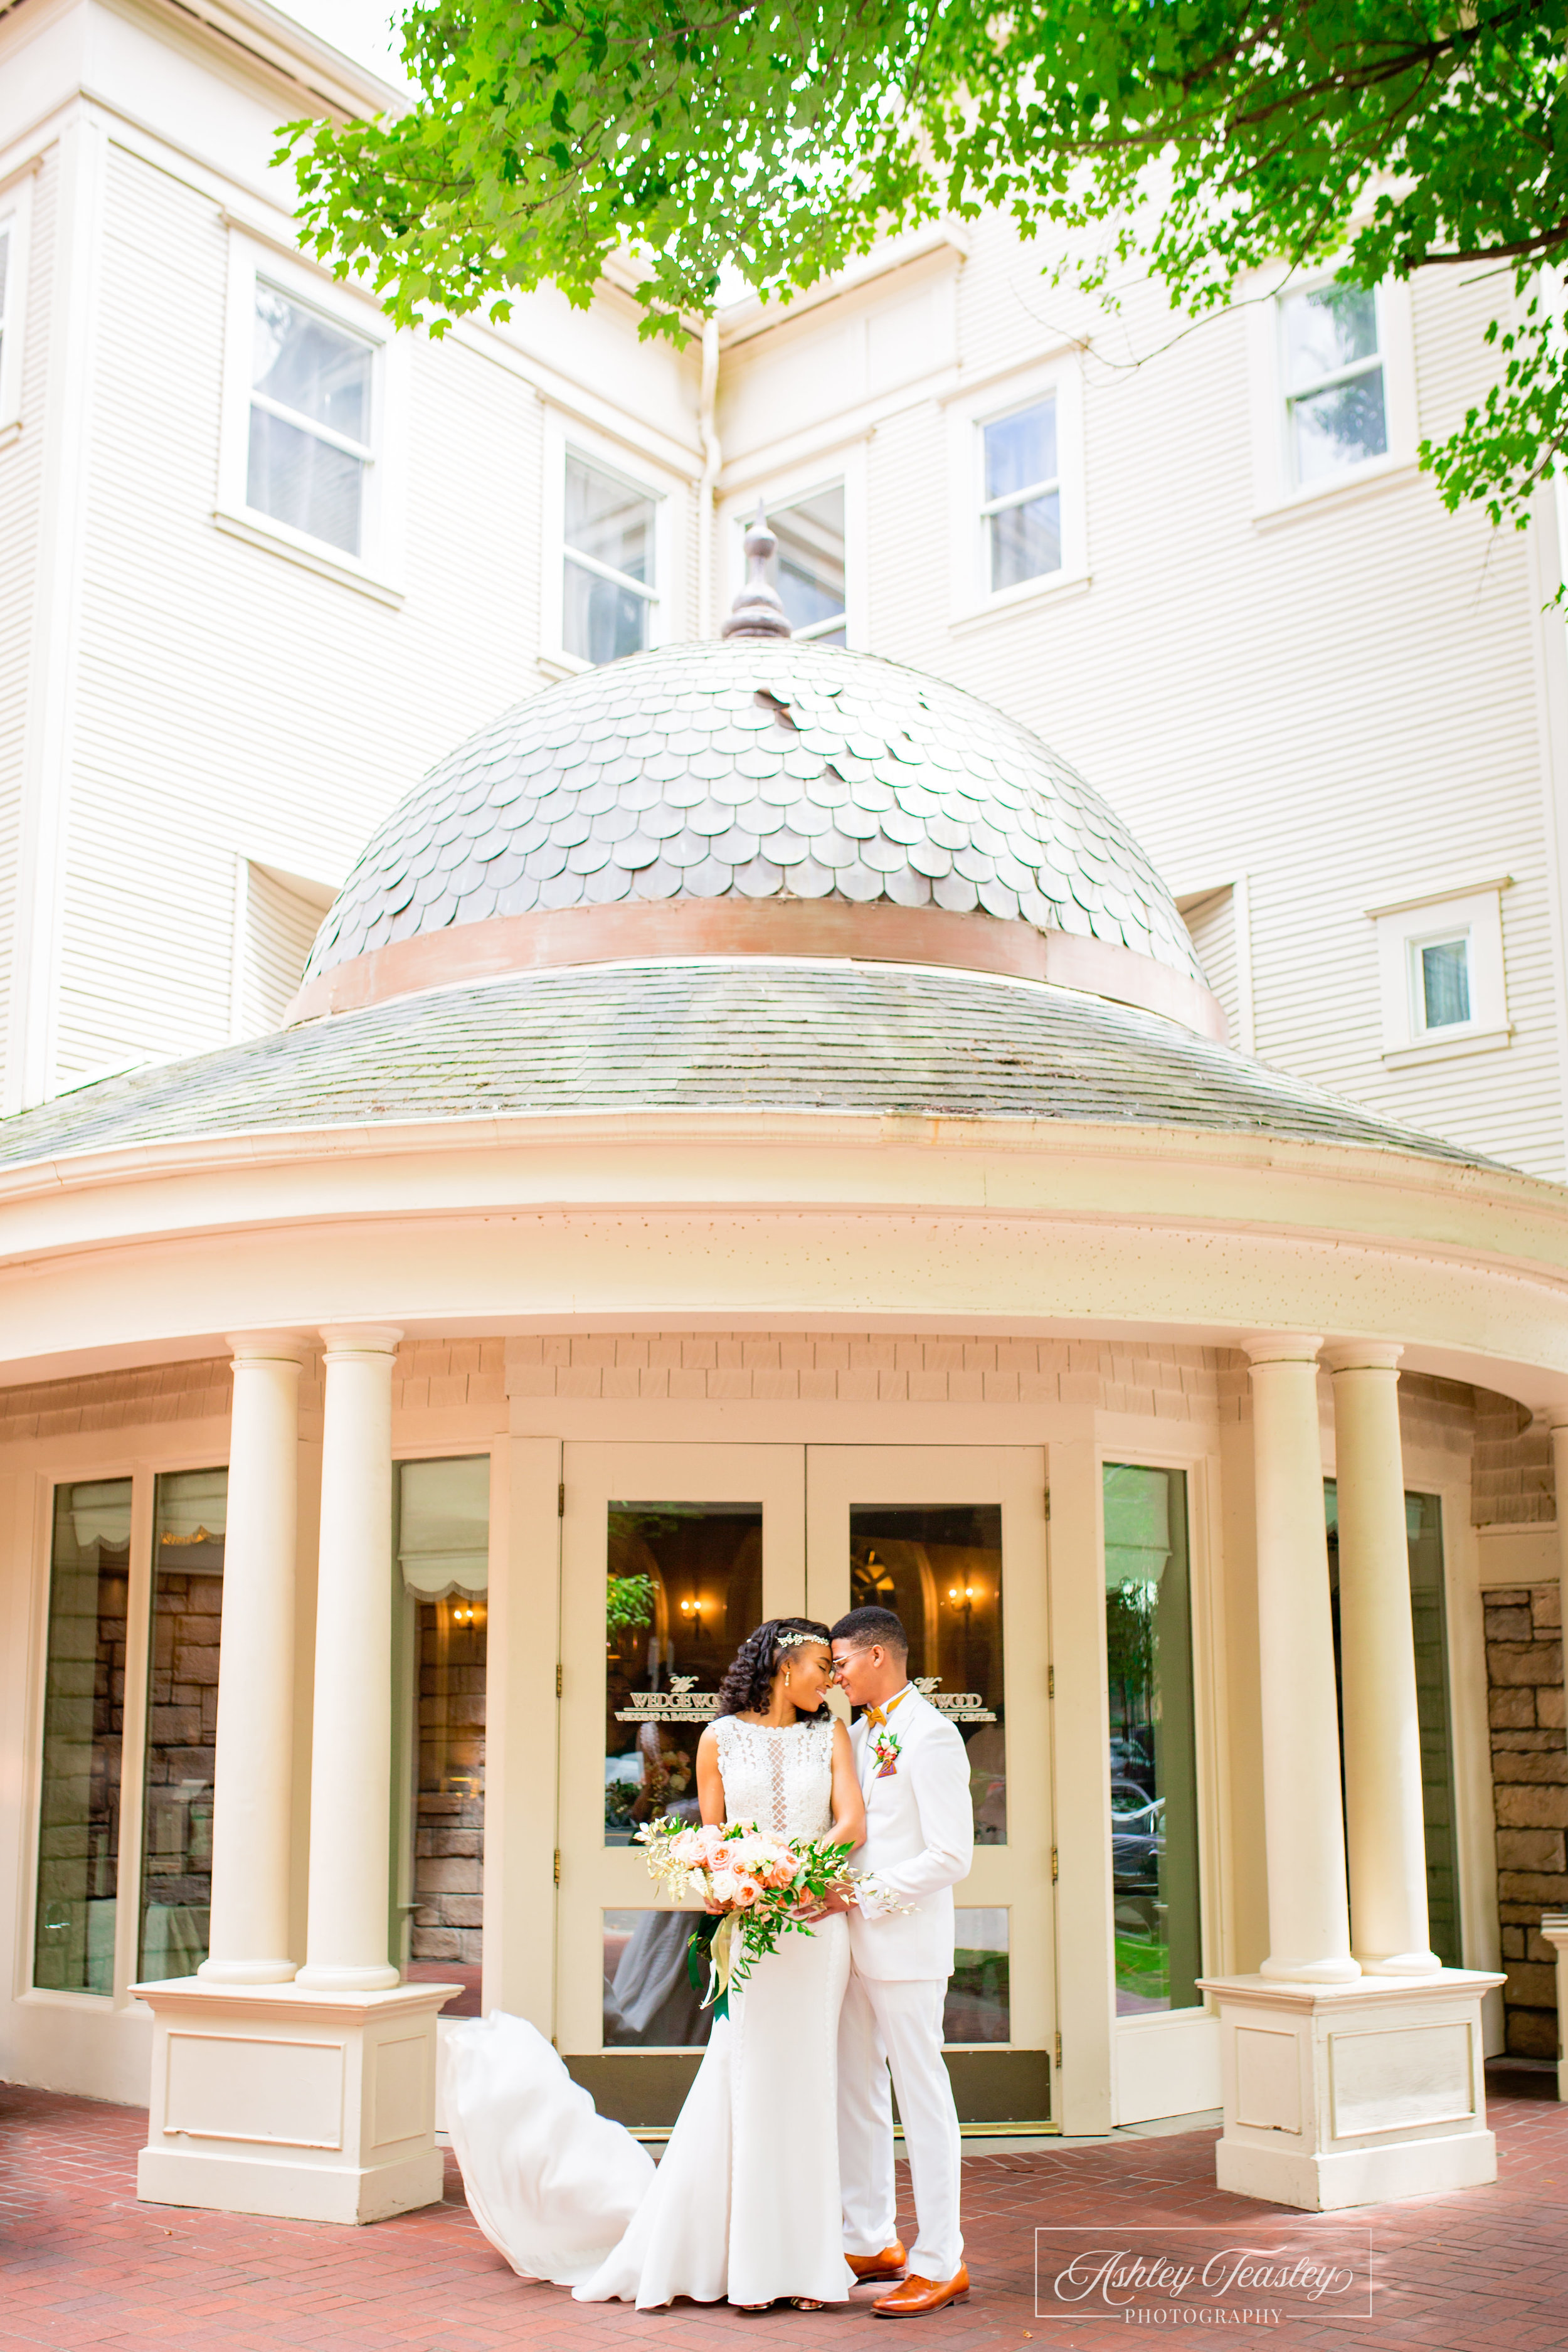 Carrie & Jonathan - Sterling Hotel - Wedgewood Weddings - Sacramento Wedding Photographer - Ashley Teasley Photography (1 of 3).jpg